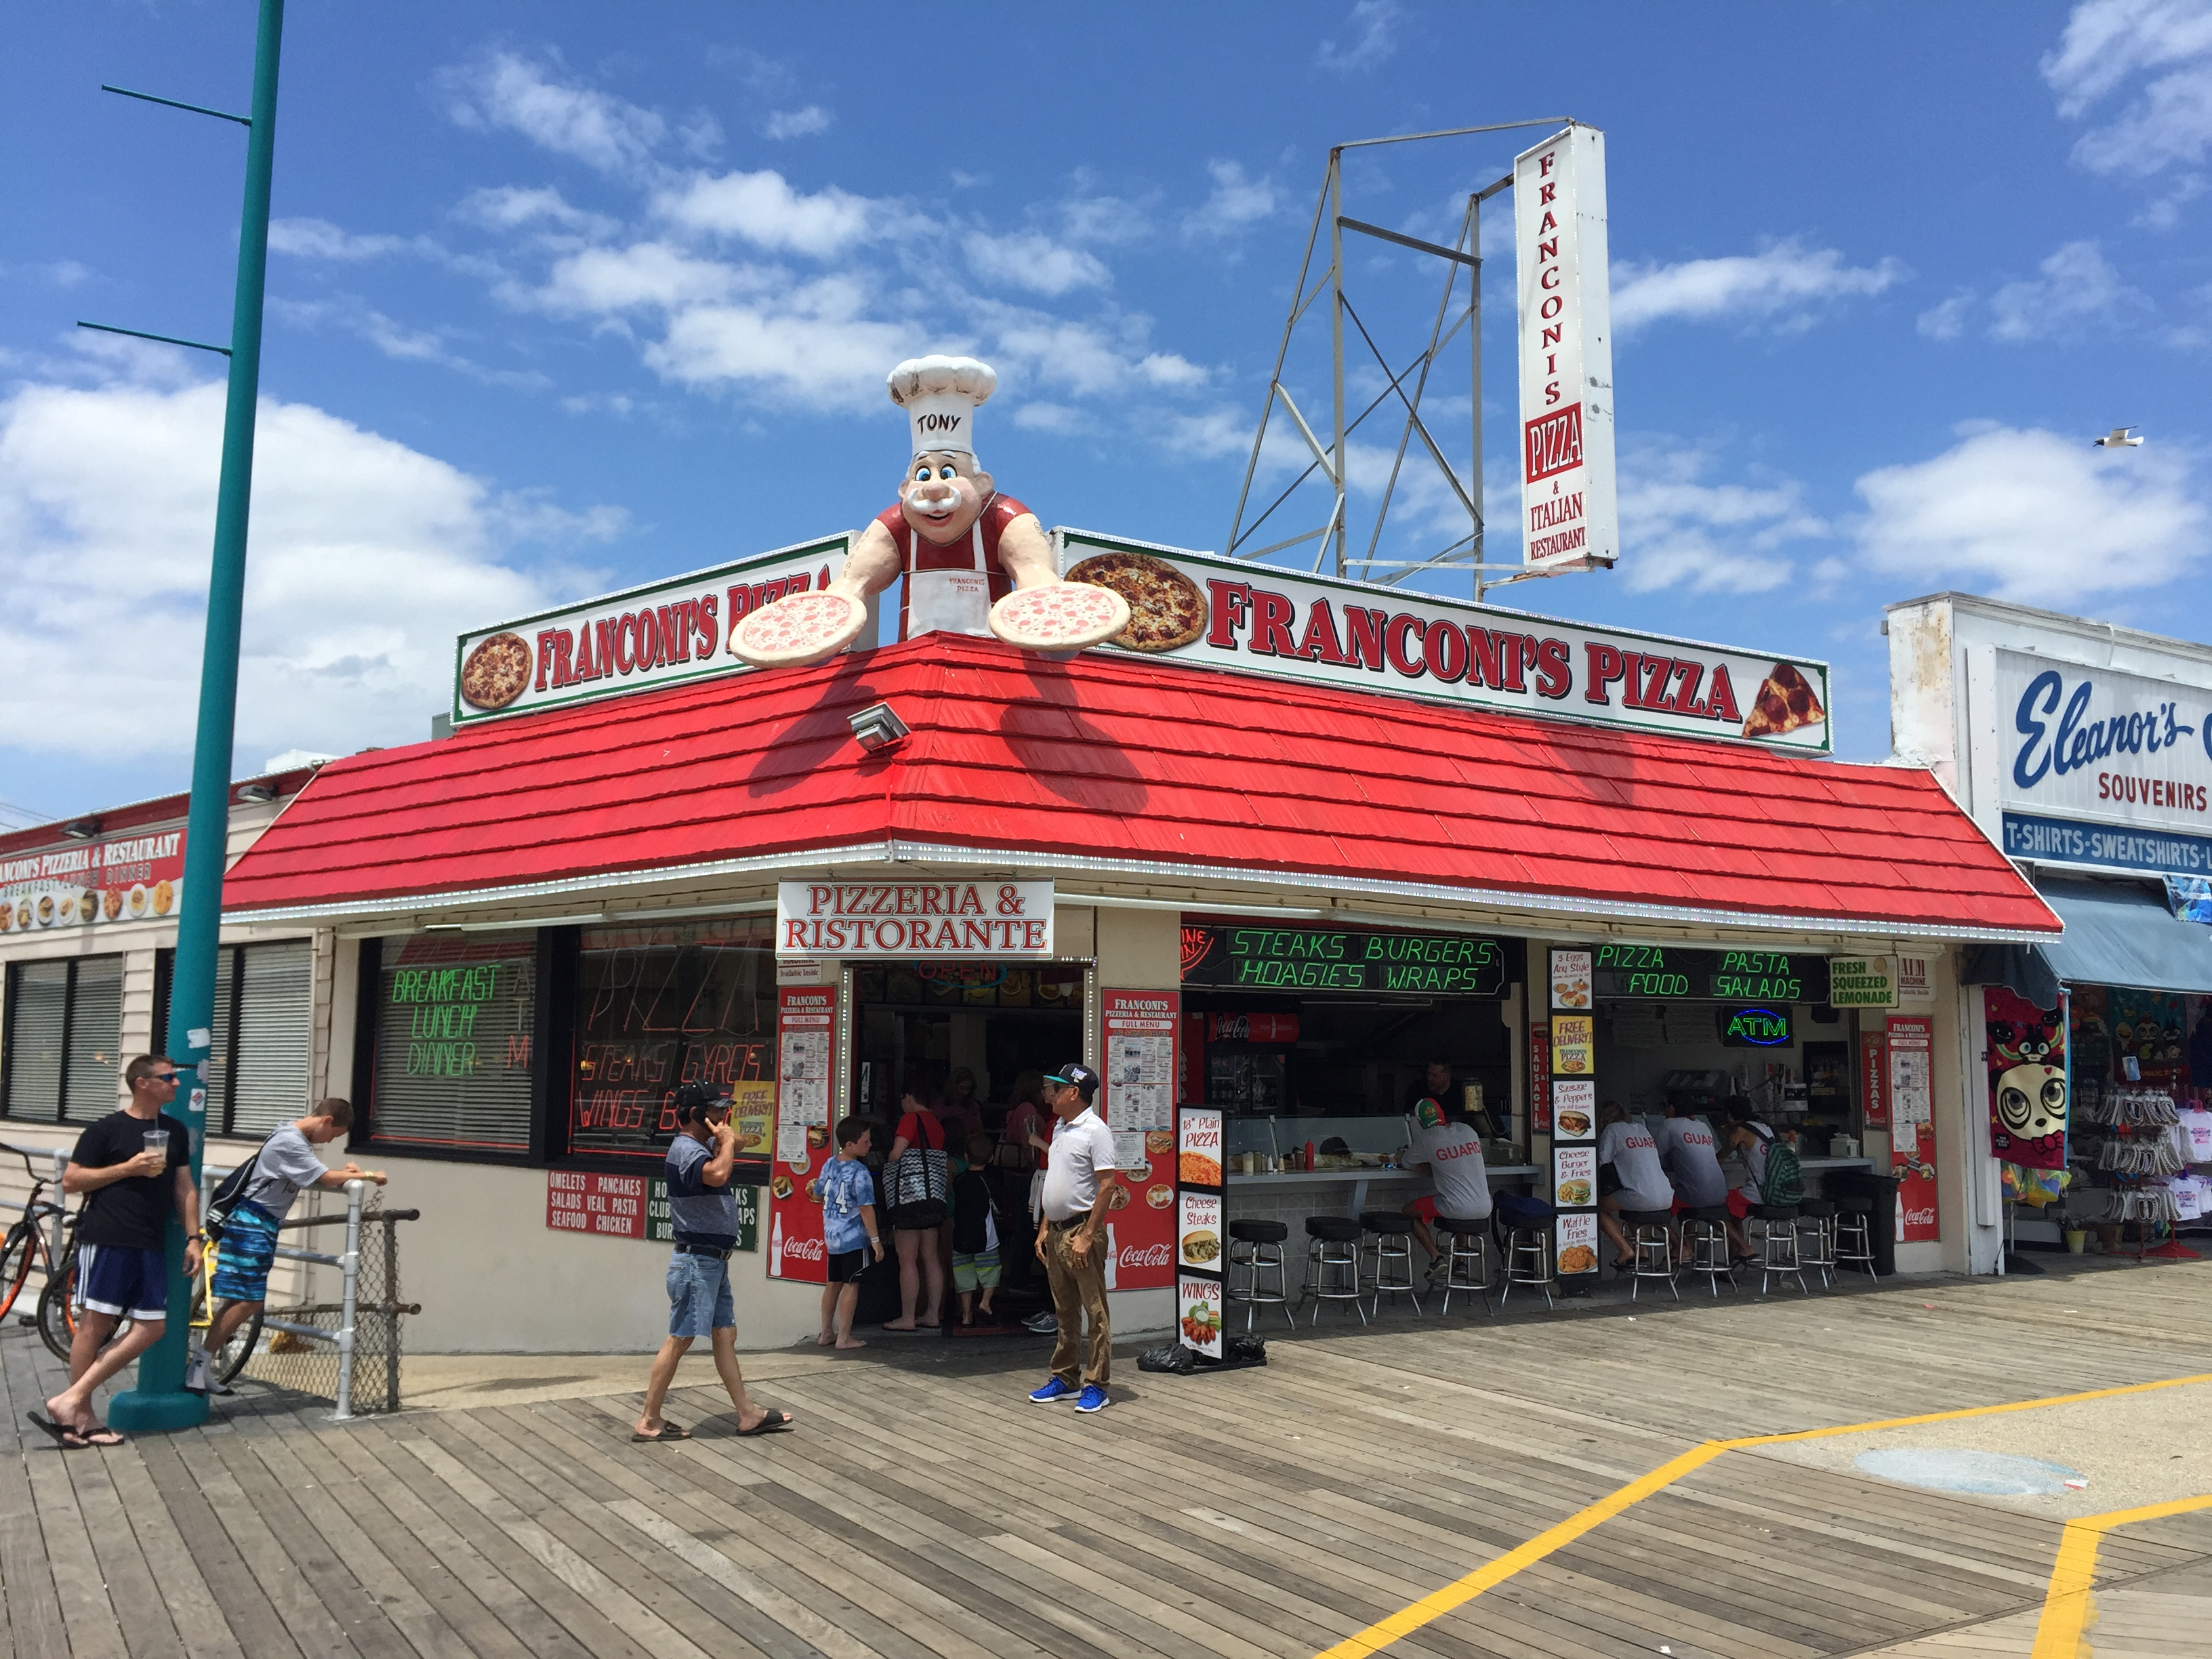 Top food places to try in wildwood n j this summer